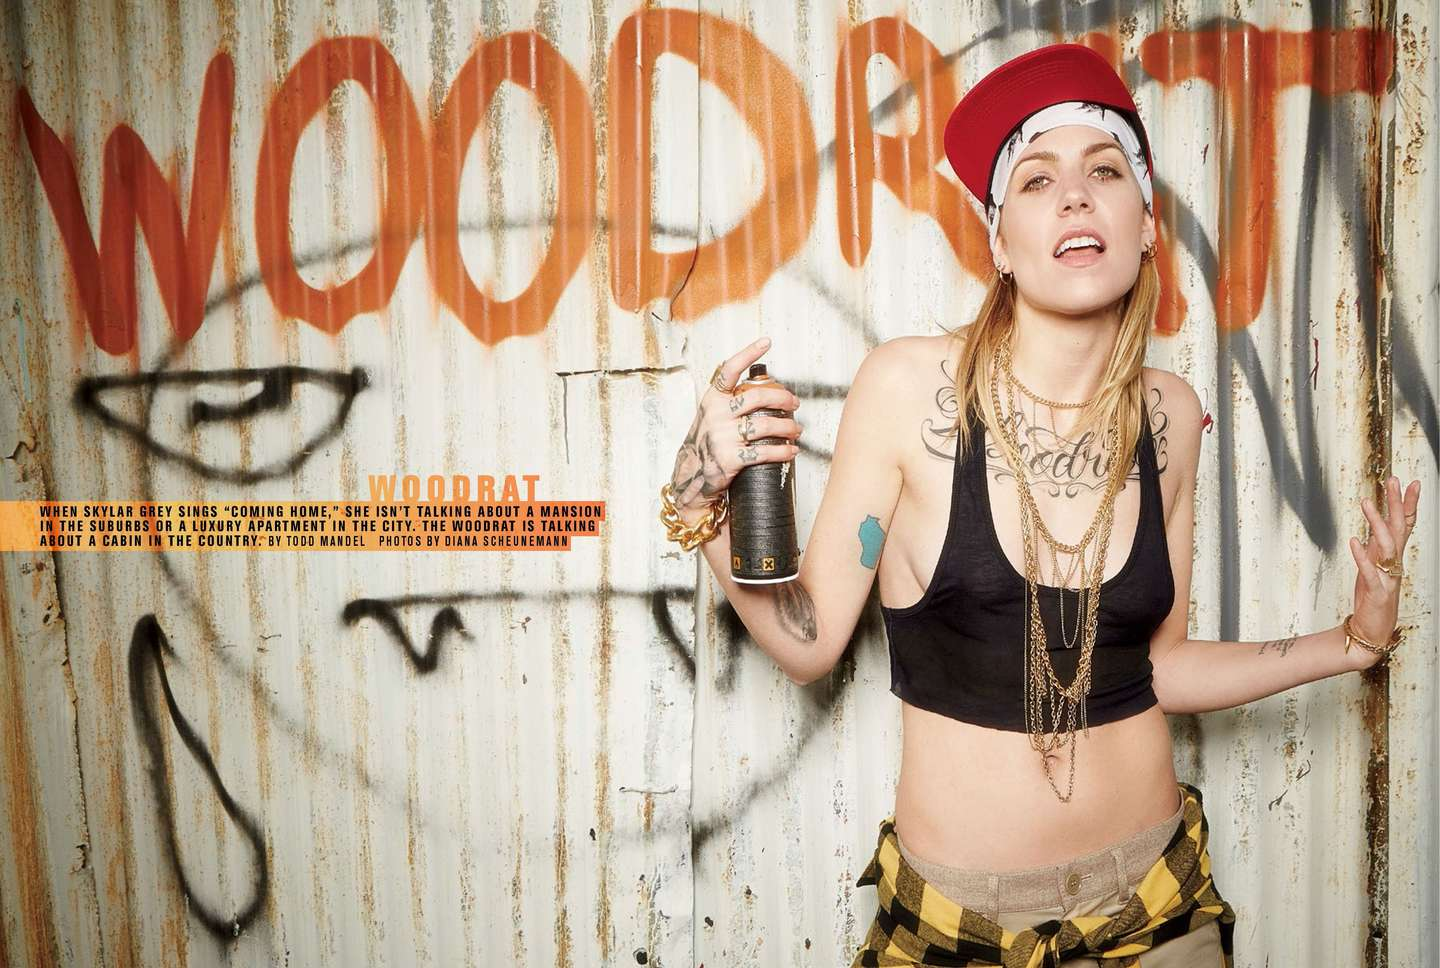 skylar grey – straight shooter